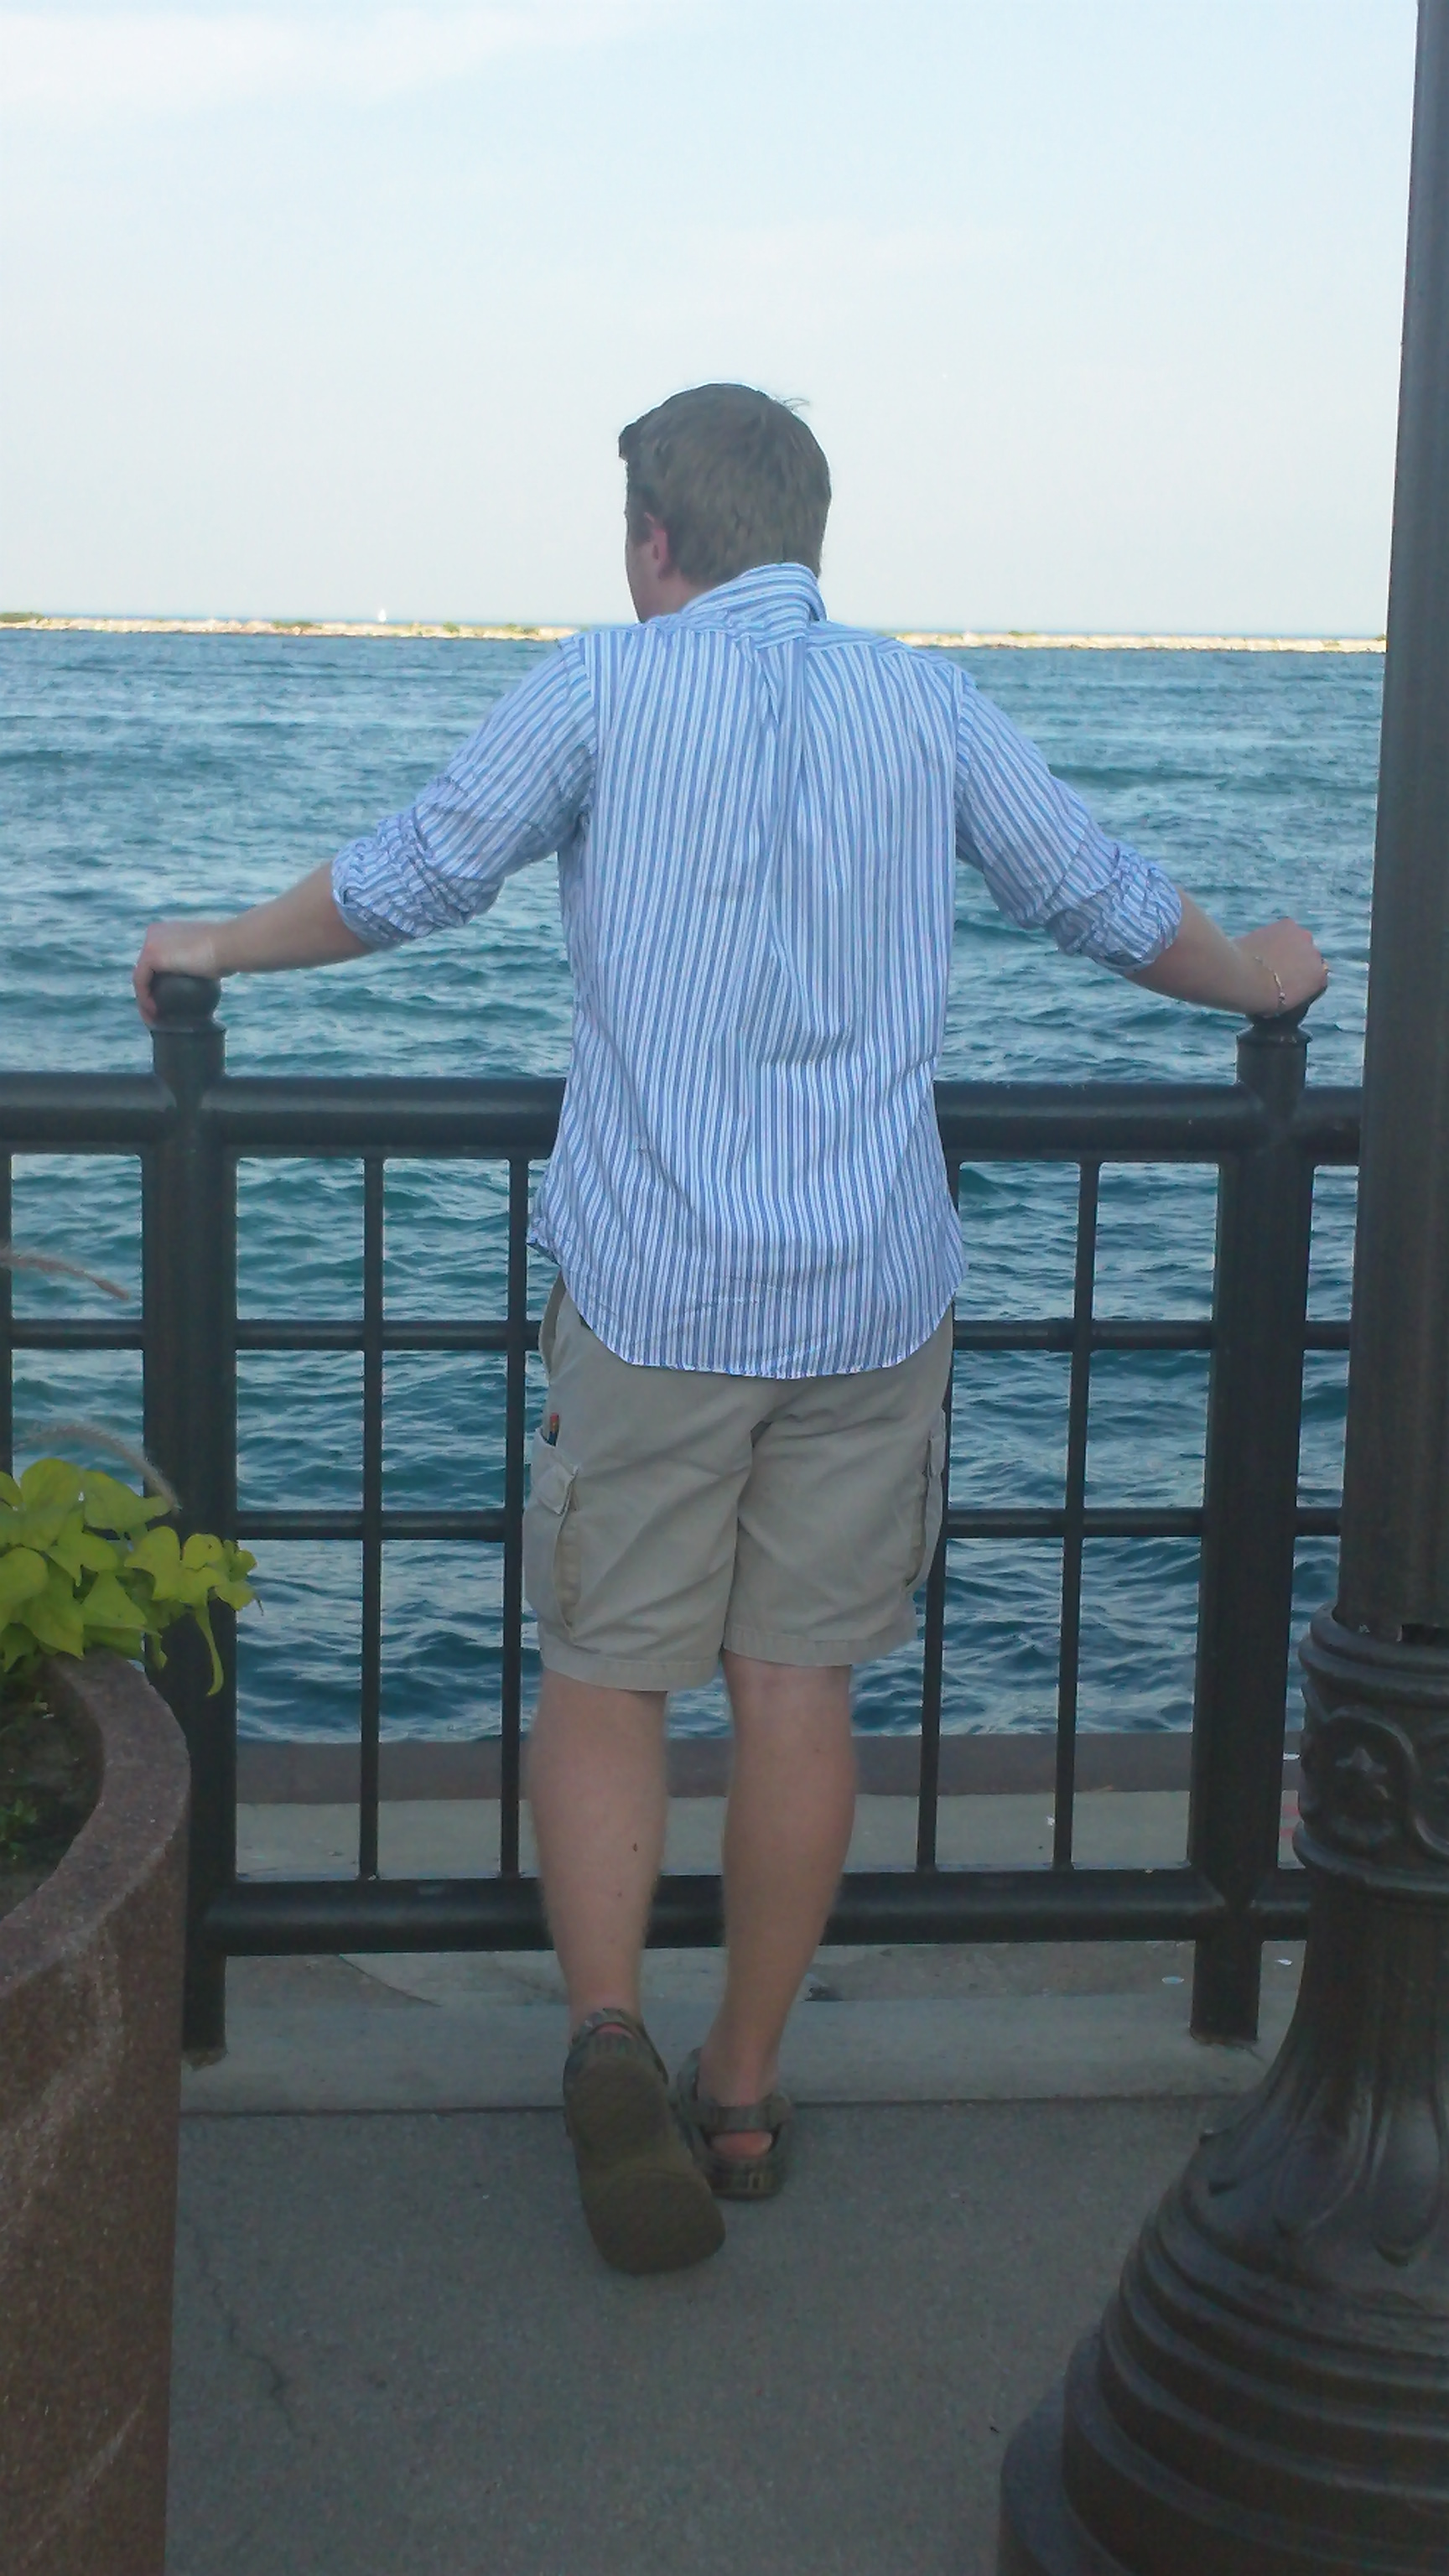 Jared with his back to the camera looking out over the water